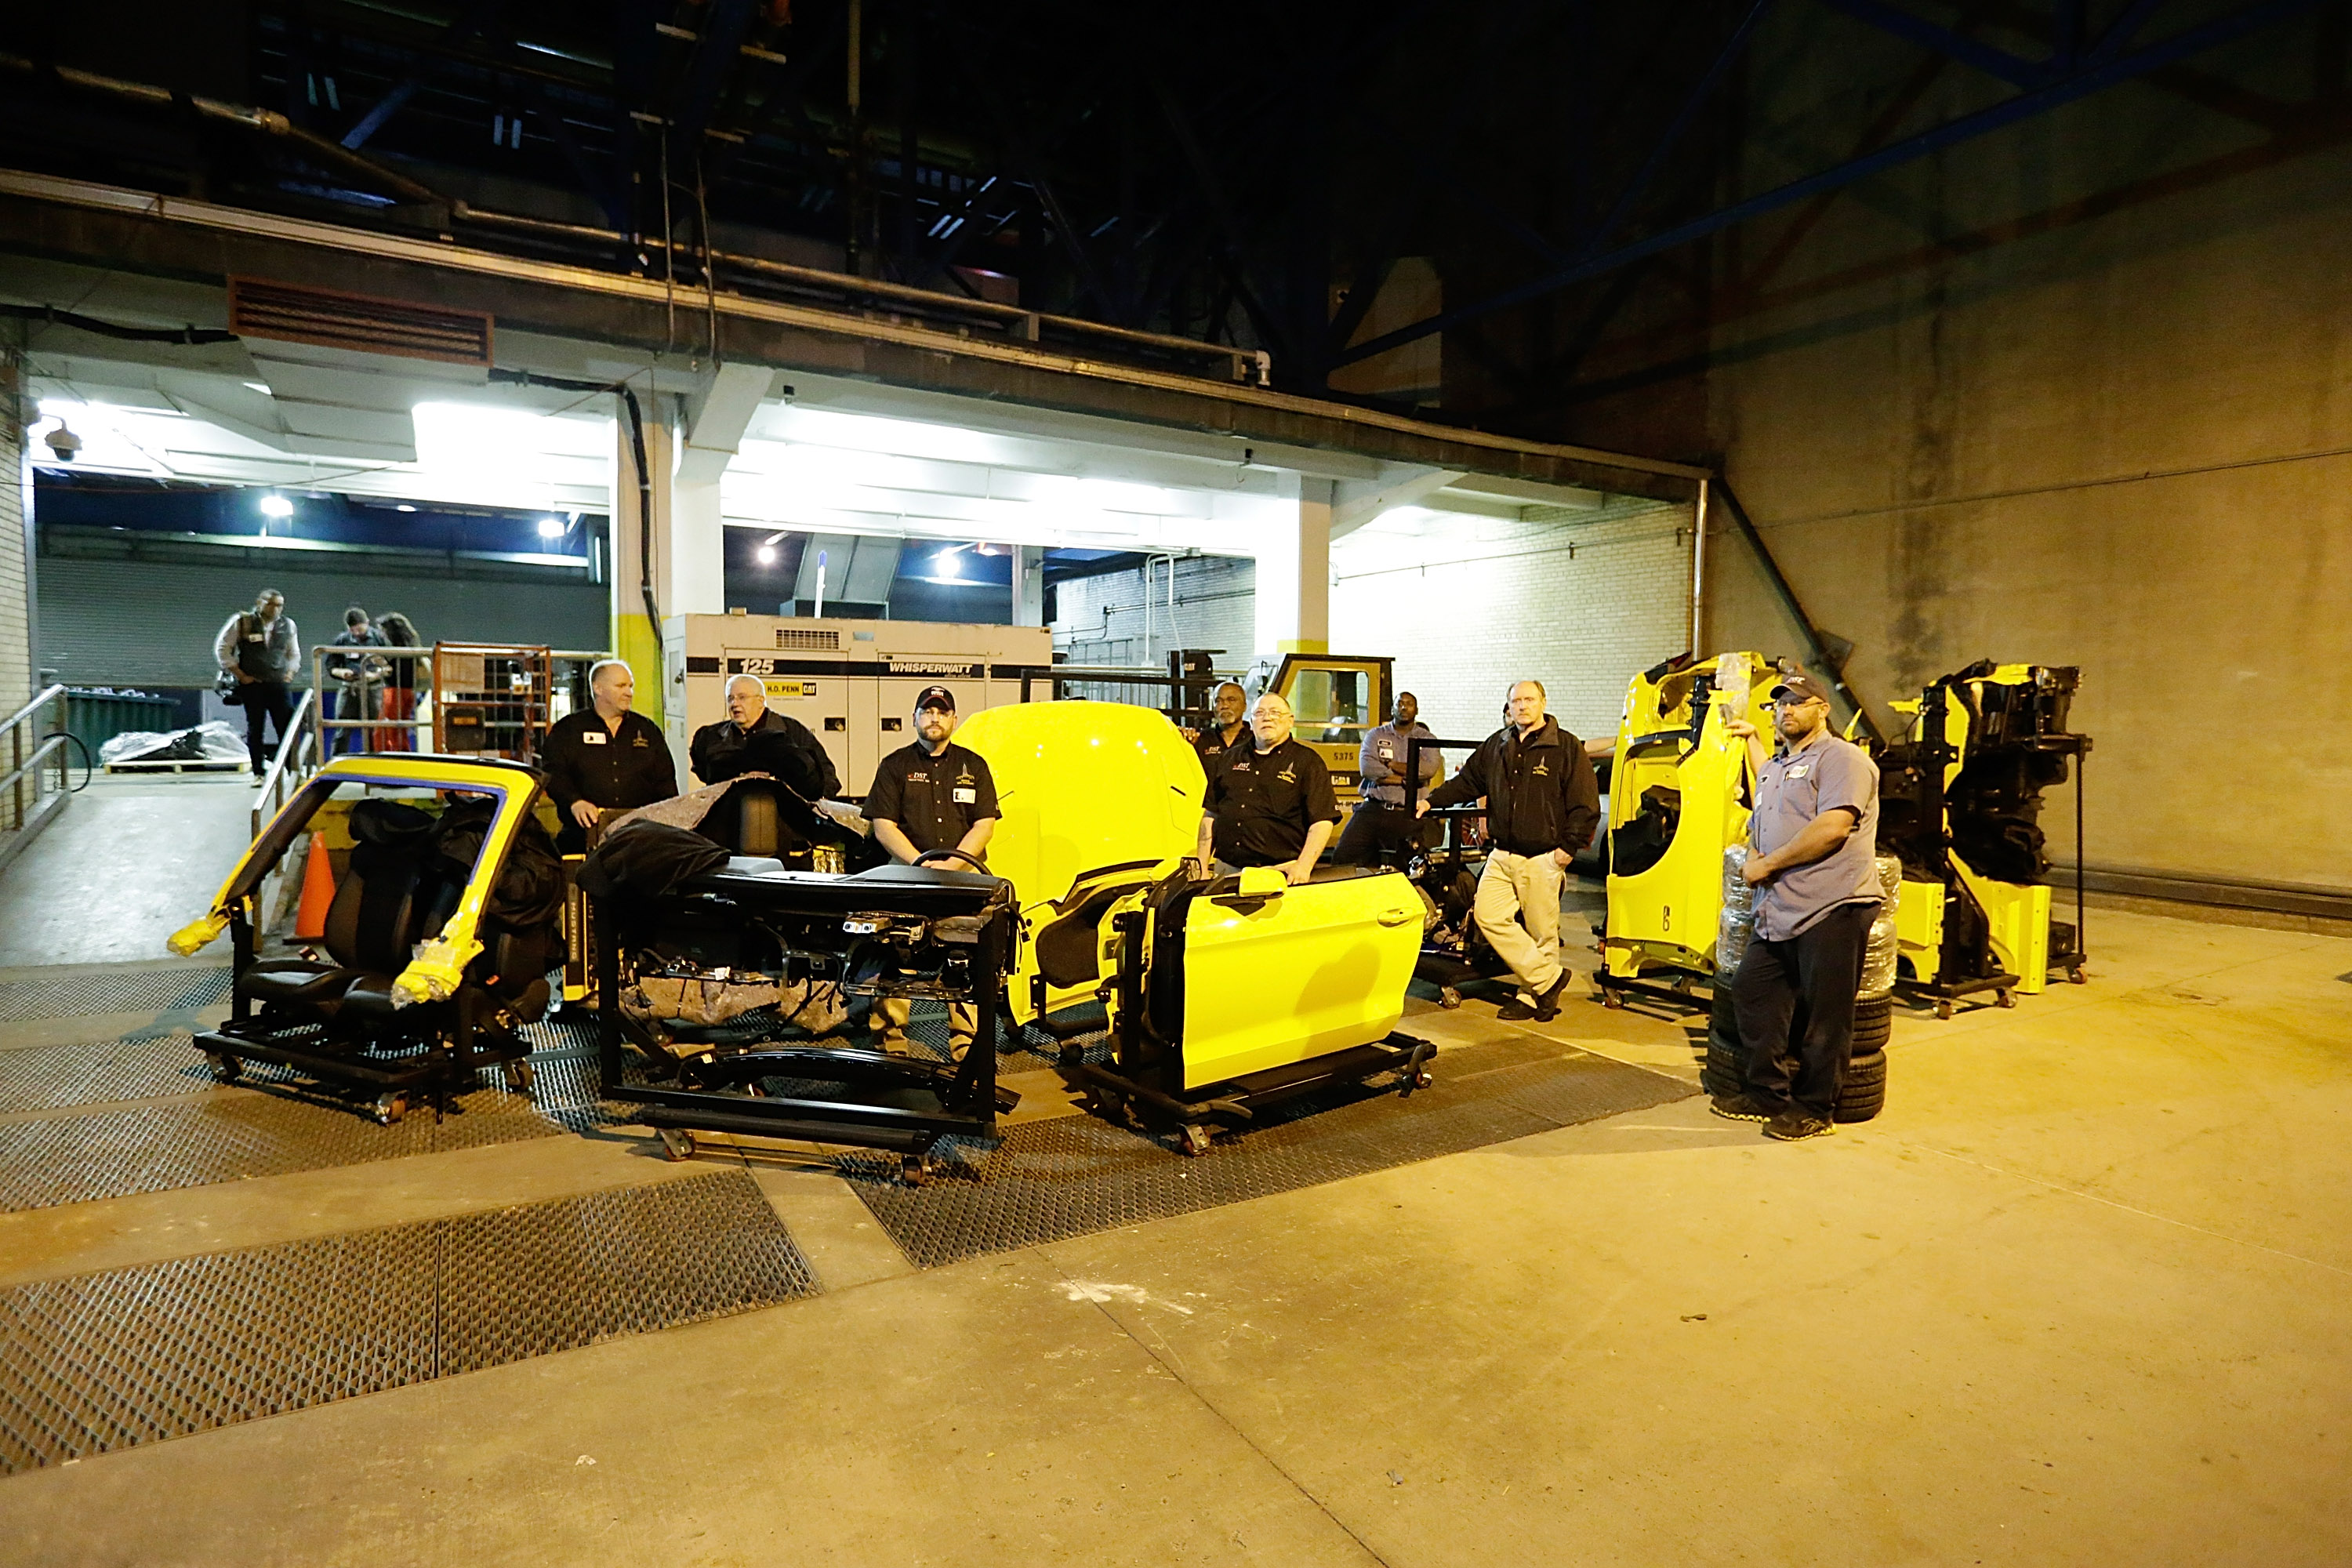 Workers unload a truck with 2015 Ford Mustang components at The Empire State Building on April 14, 2014 in New York City.